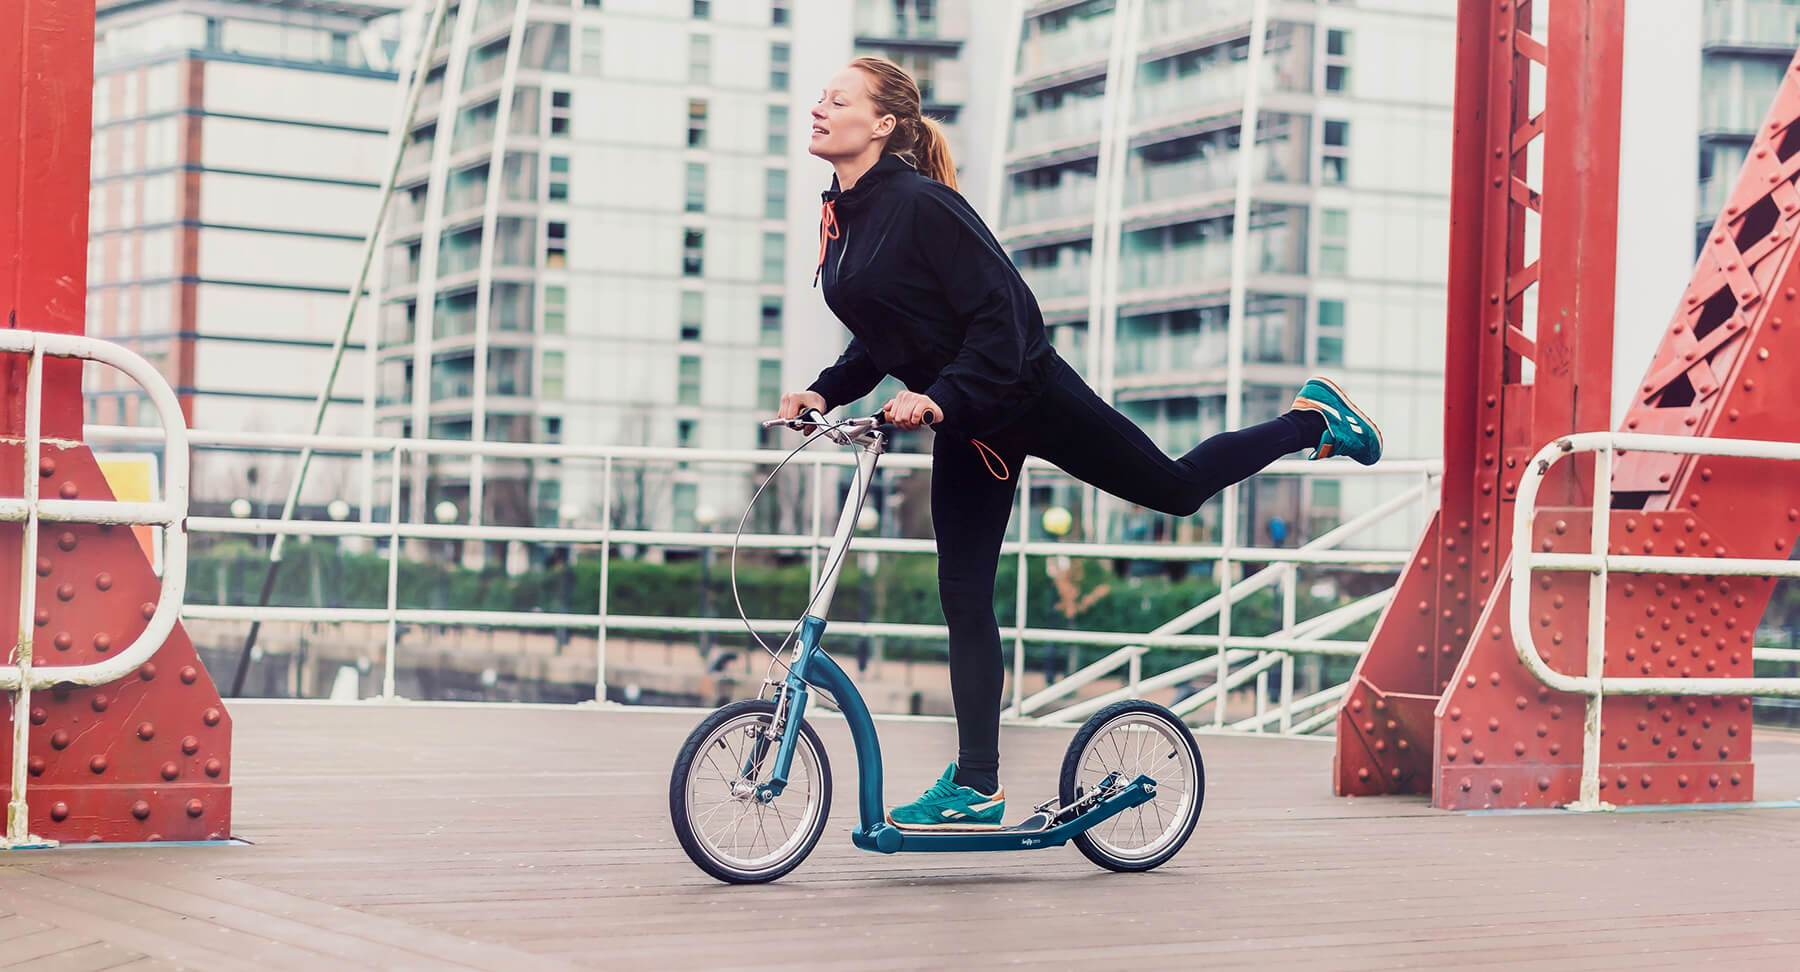 scooter fitness, big wheel adult scooter, kick scooter for adults